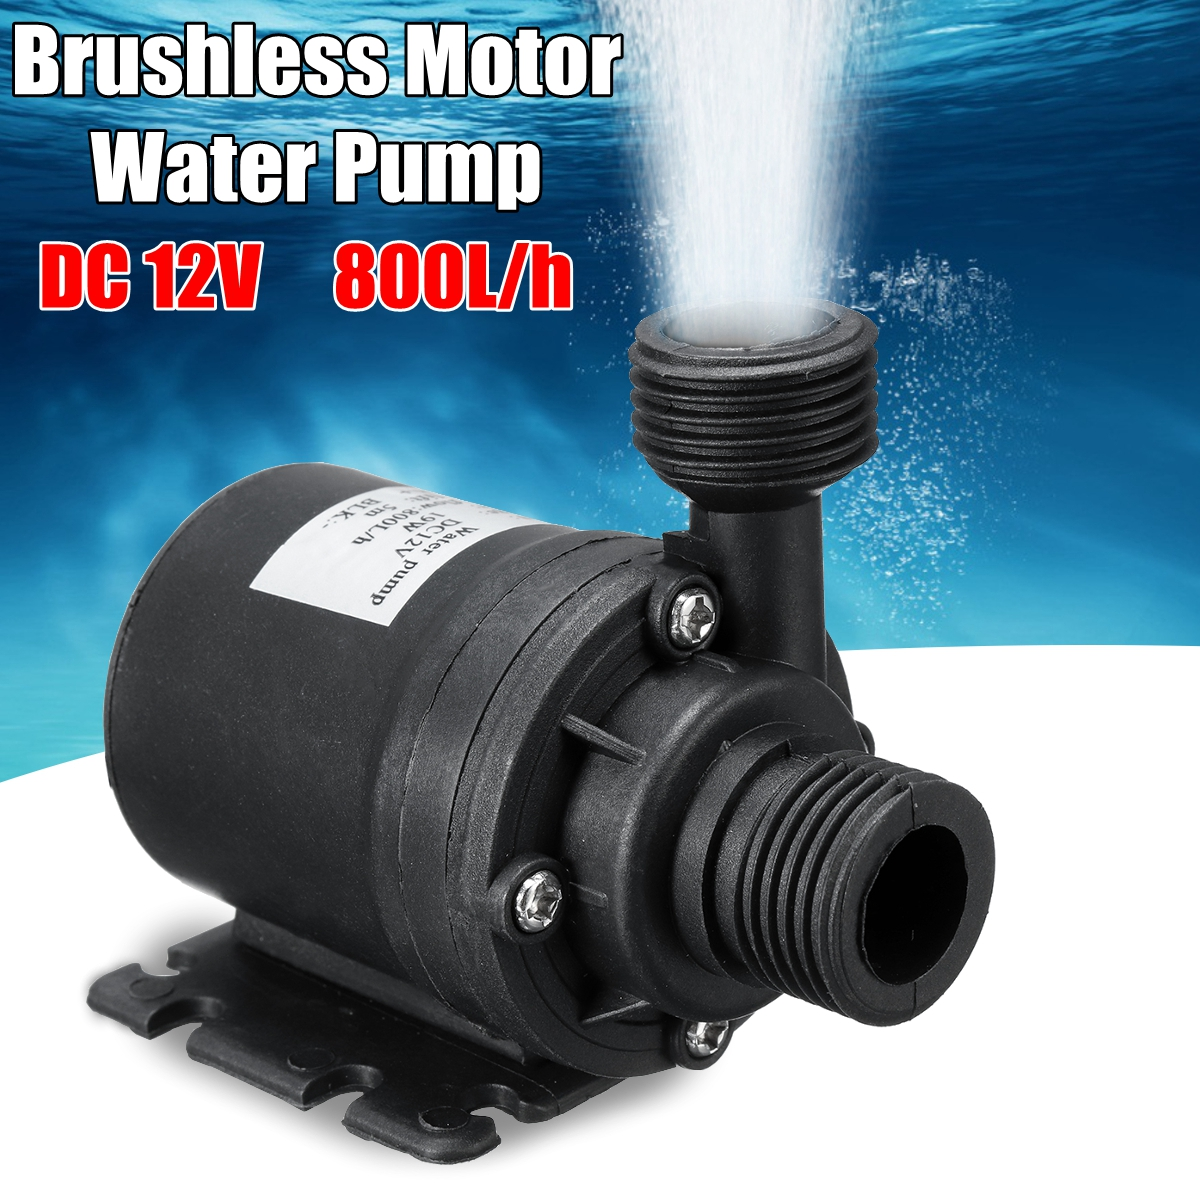 Ultra Quiet Mini DC 12V Lift 5M 600L//H Brushless Motor Submersible Water Pump UP